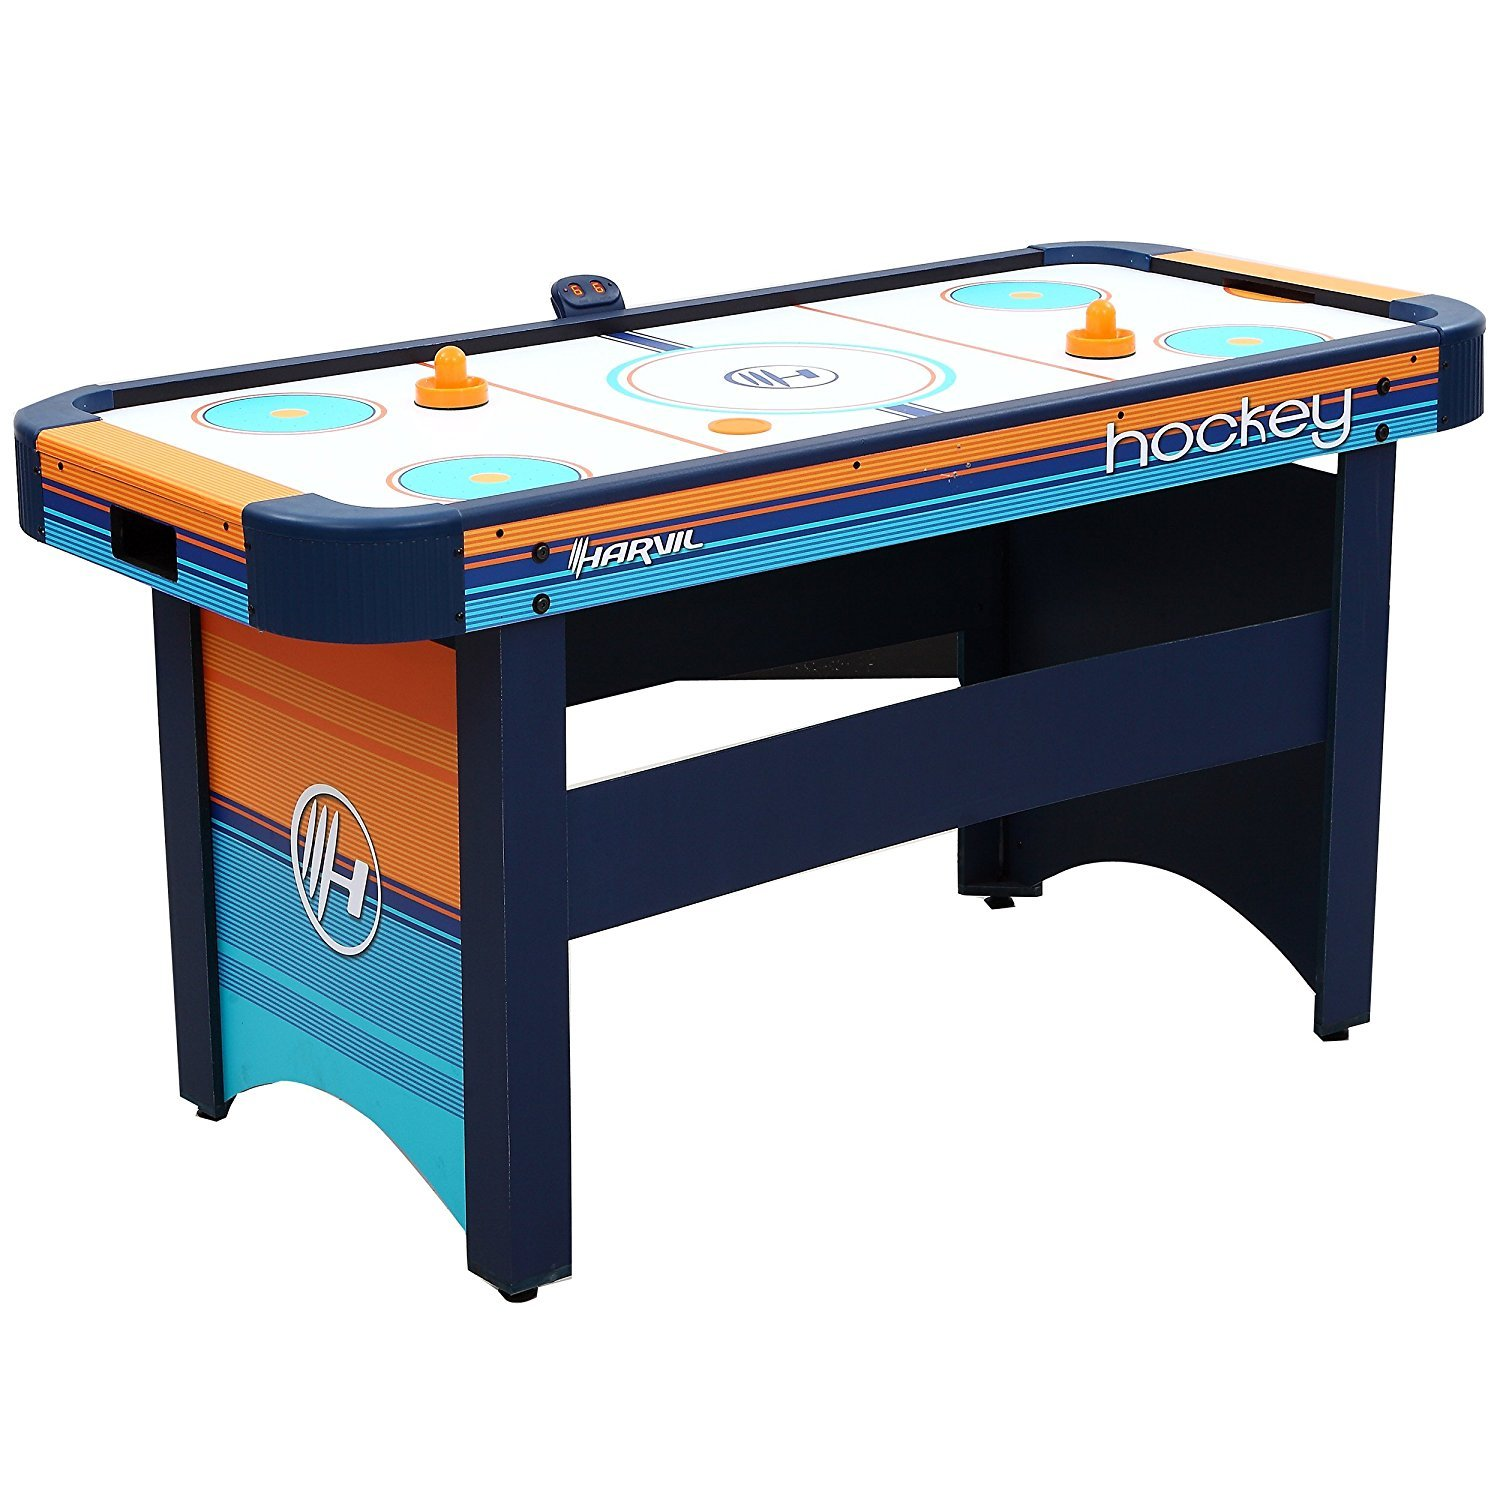 Harvil 5 Foot Air Hockey Table for Kids and Adults with Dual Electric Blowers, Leg Levelers and Free Pushers and Pucks